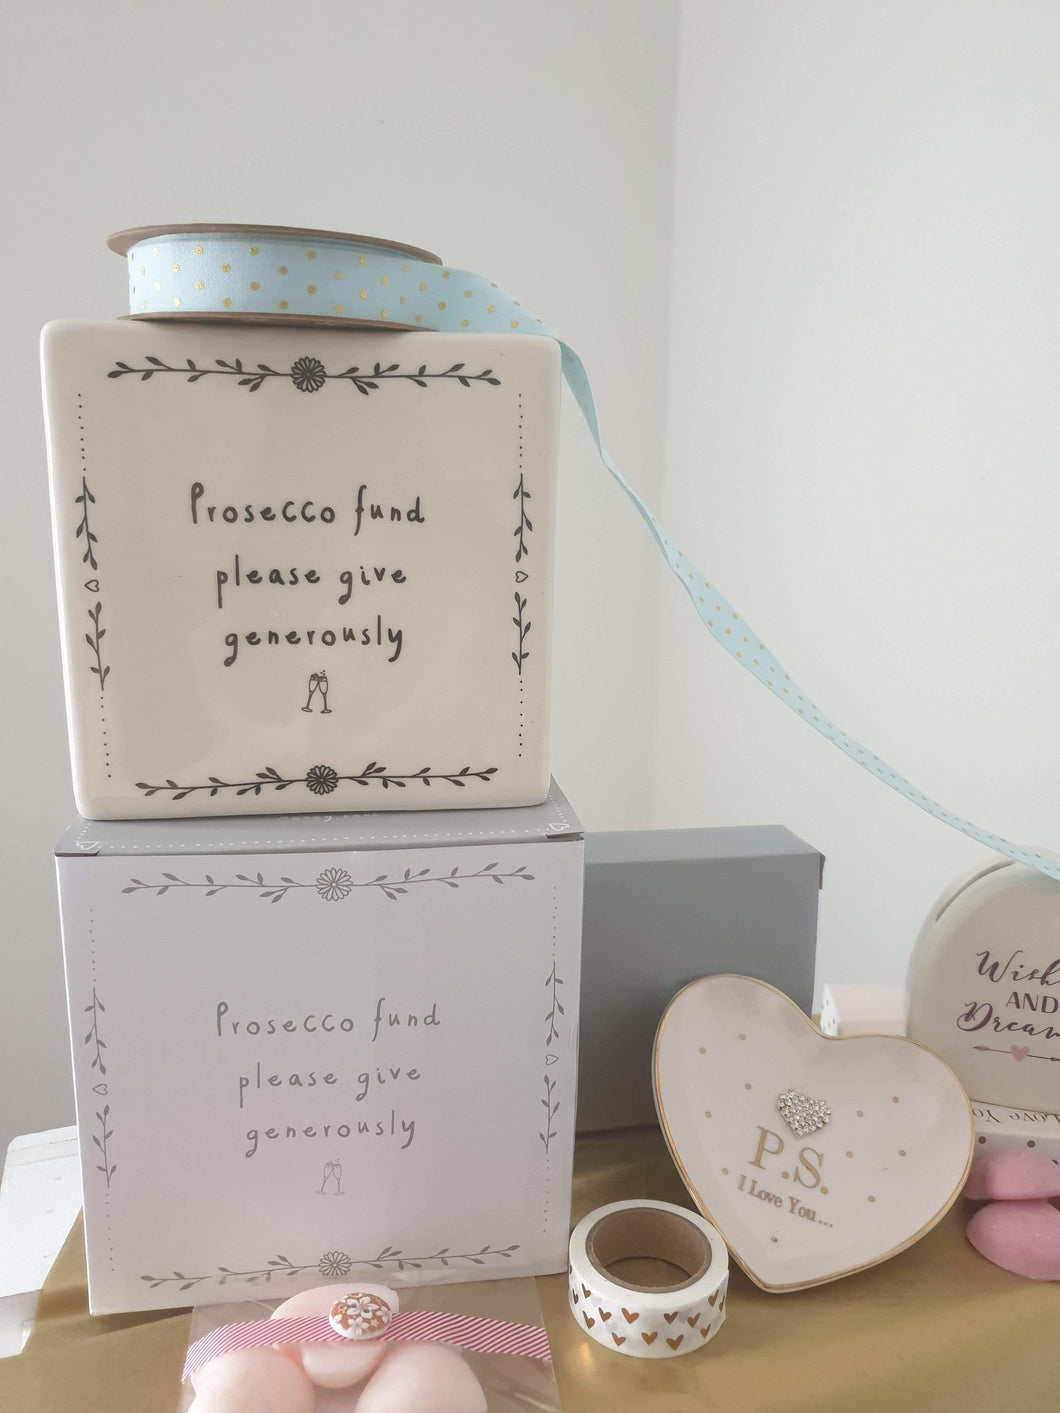 Prosecco fund ceramic money box - Cordelia's House of Treasures